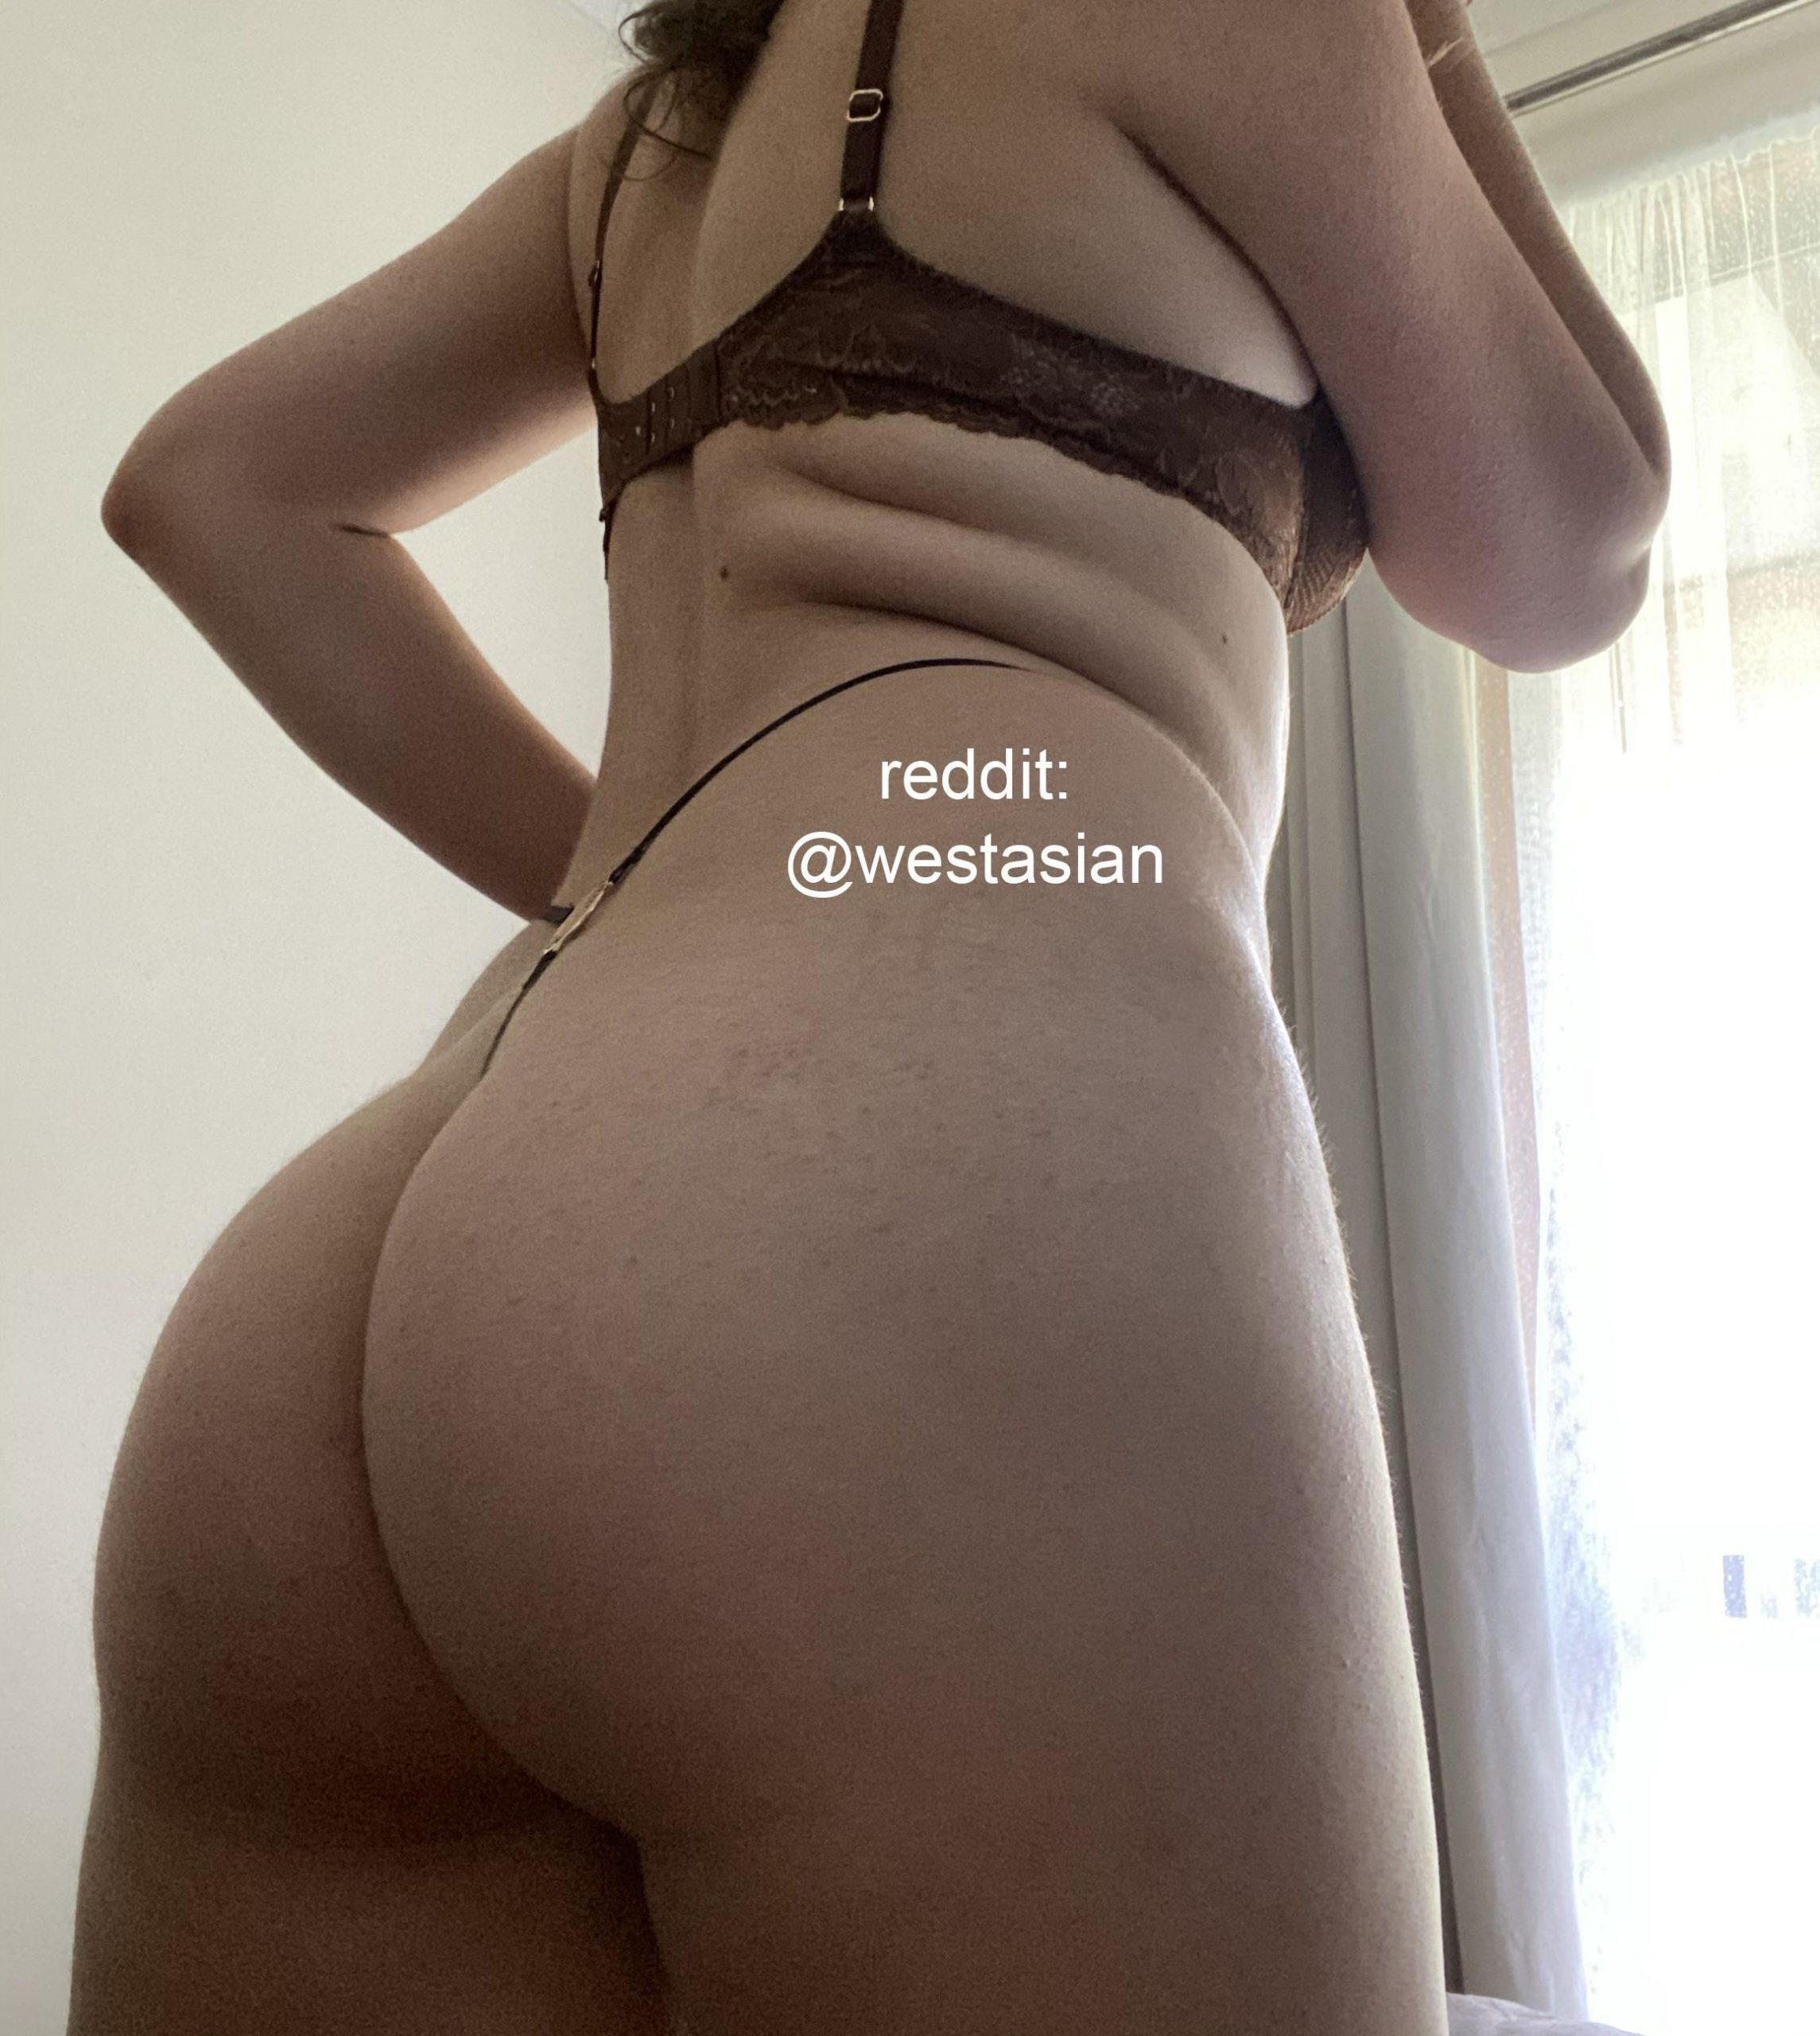 Come Spank My Russian Ass